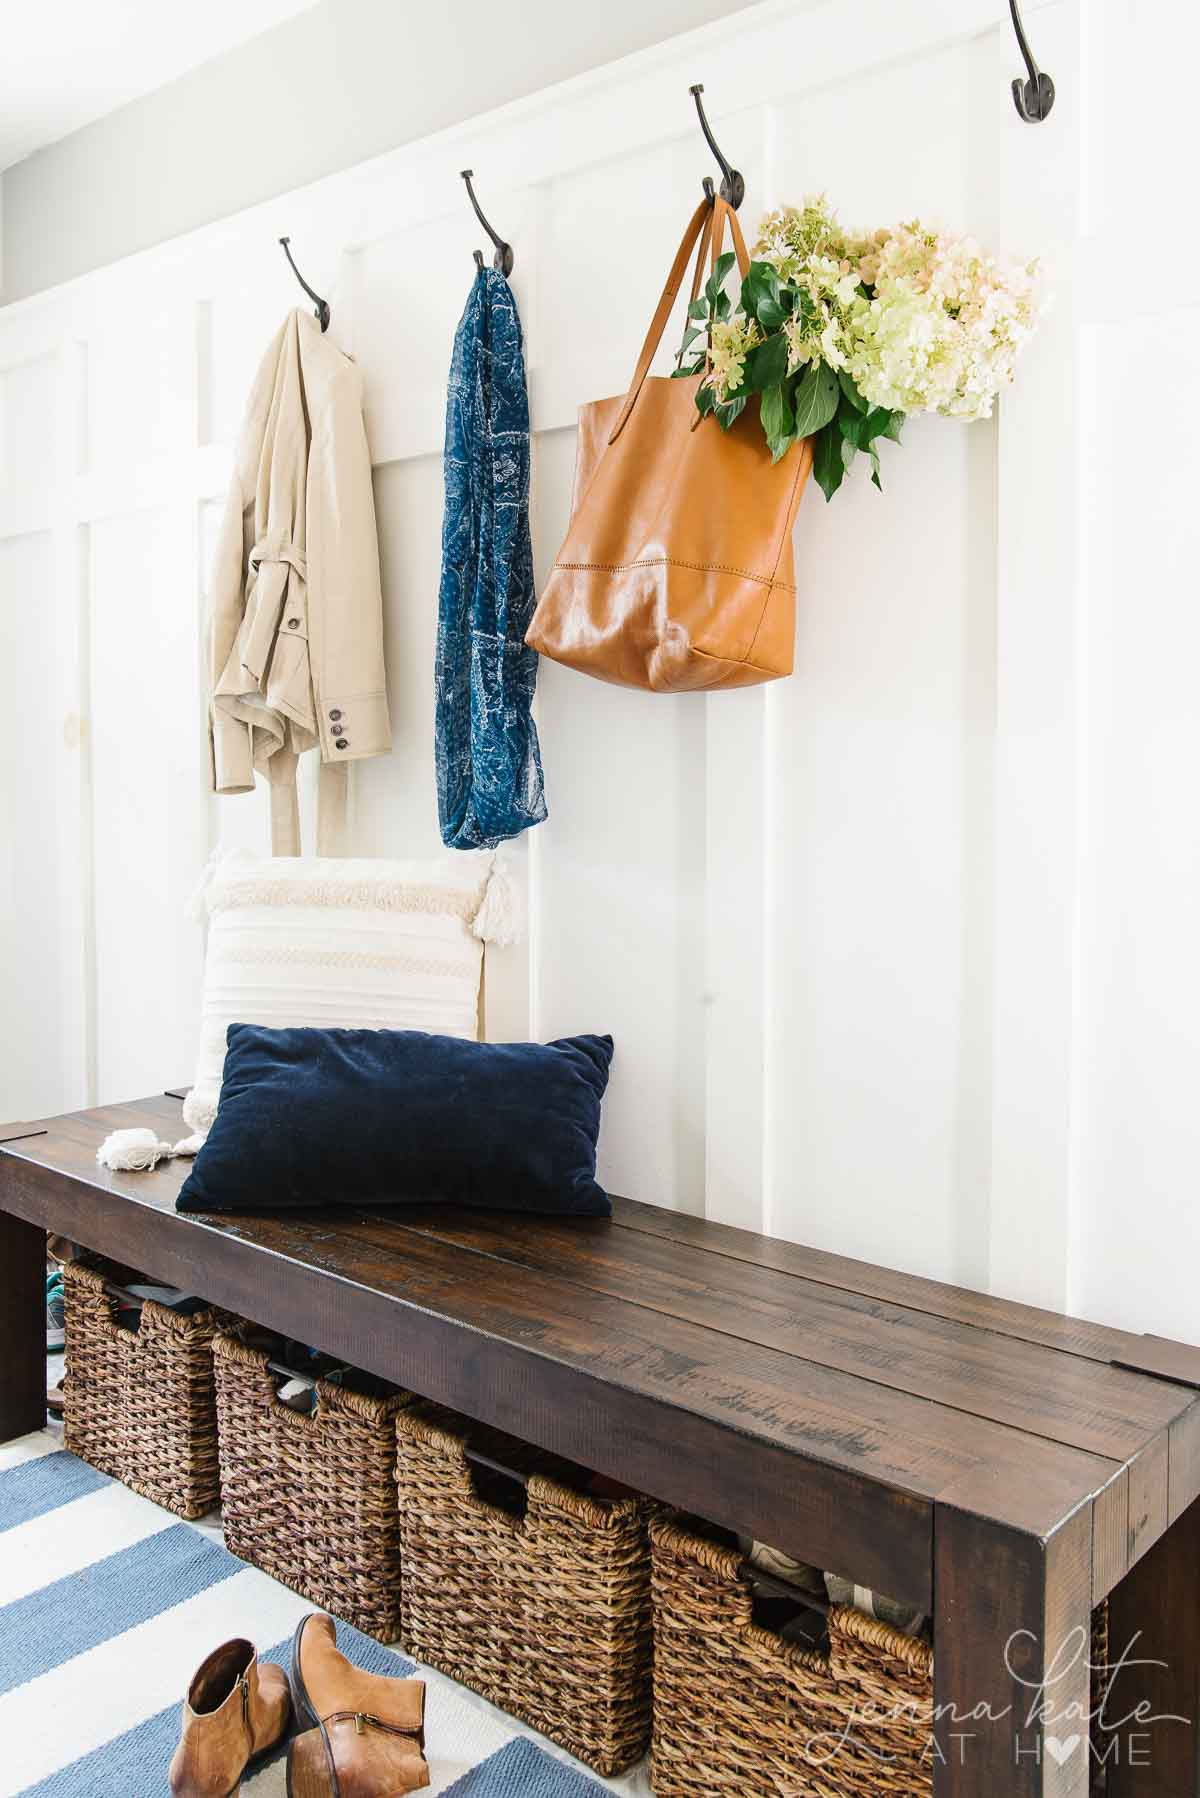 Mudroom simply decorated for fall with a tote bag filled with hydrangeas